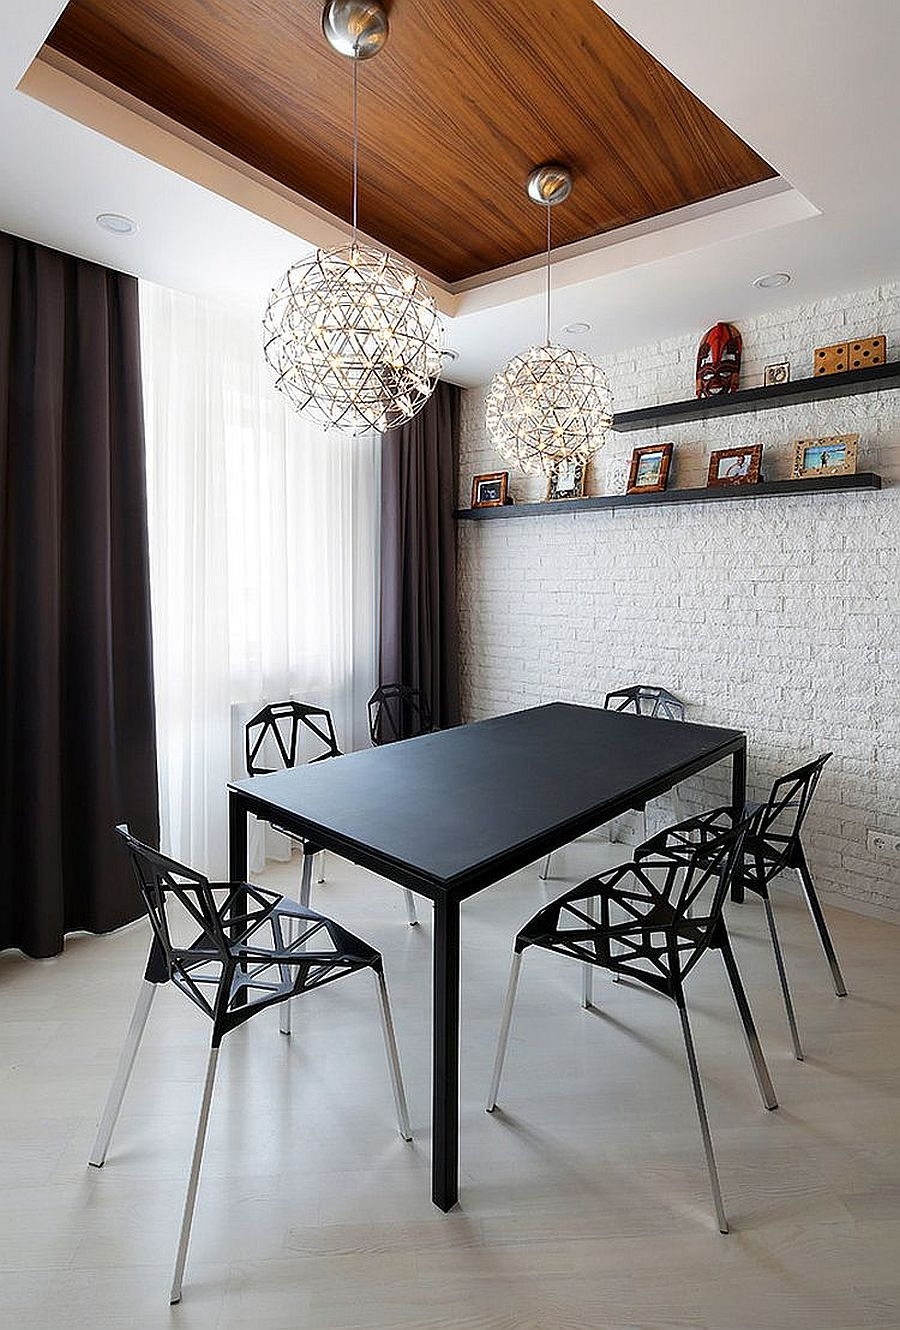 Painting the brick wall completely white works well in contemporary dining rooms